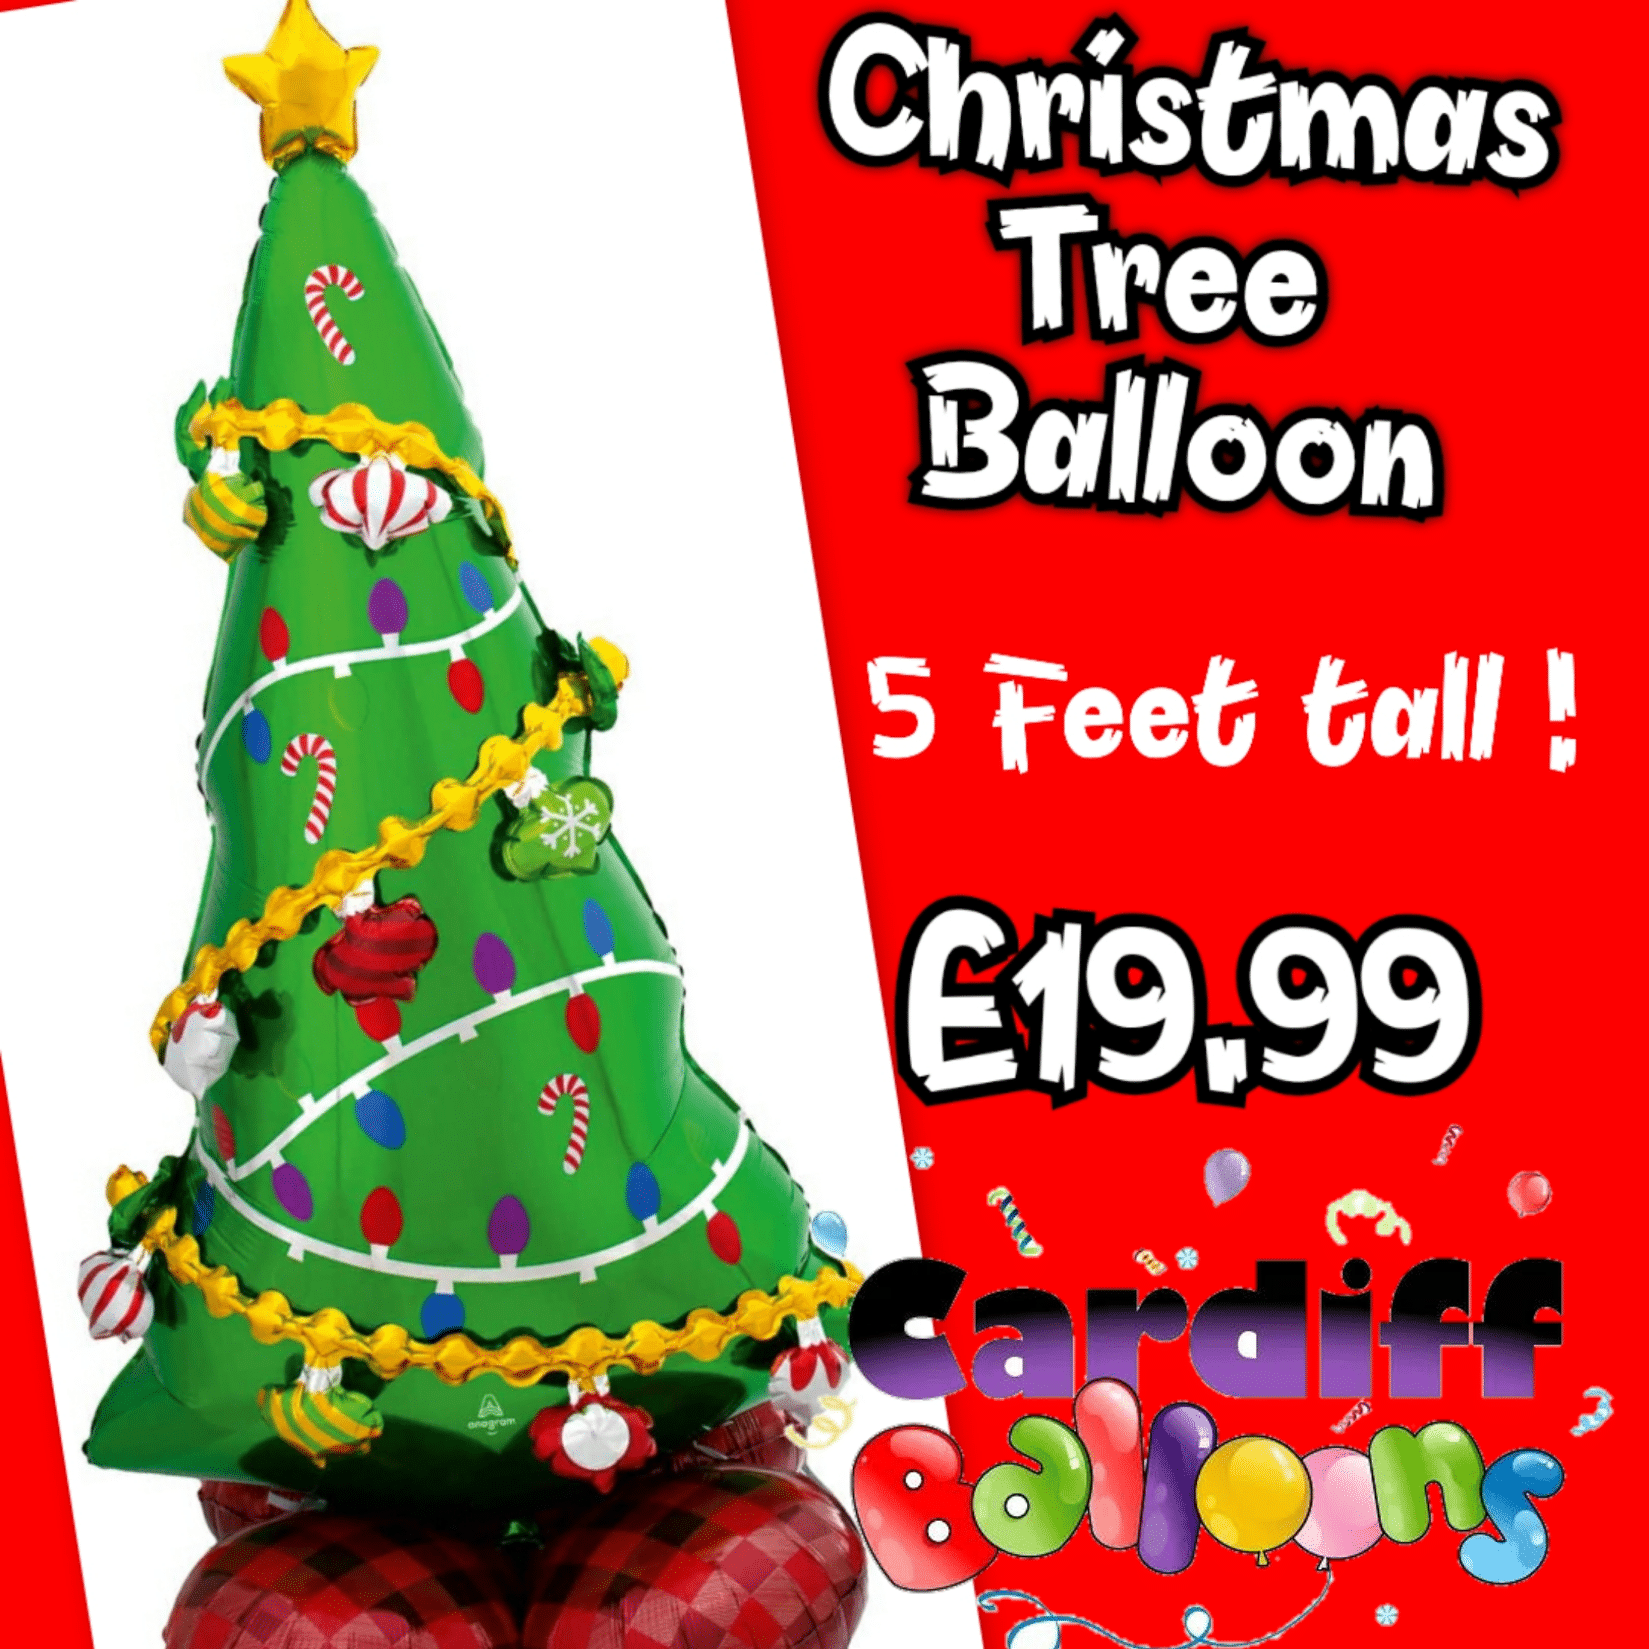 Giant Christmas Tree Foil Balloon Available From www.cardiffballoons.co.uk